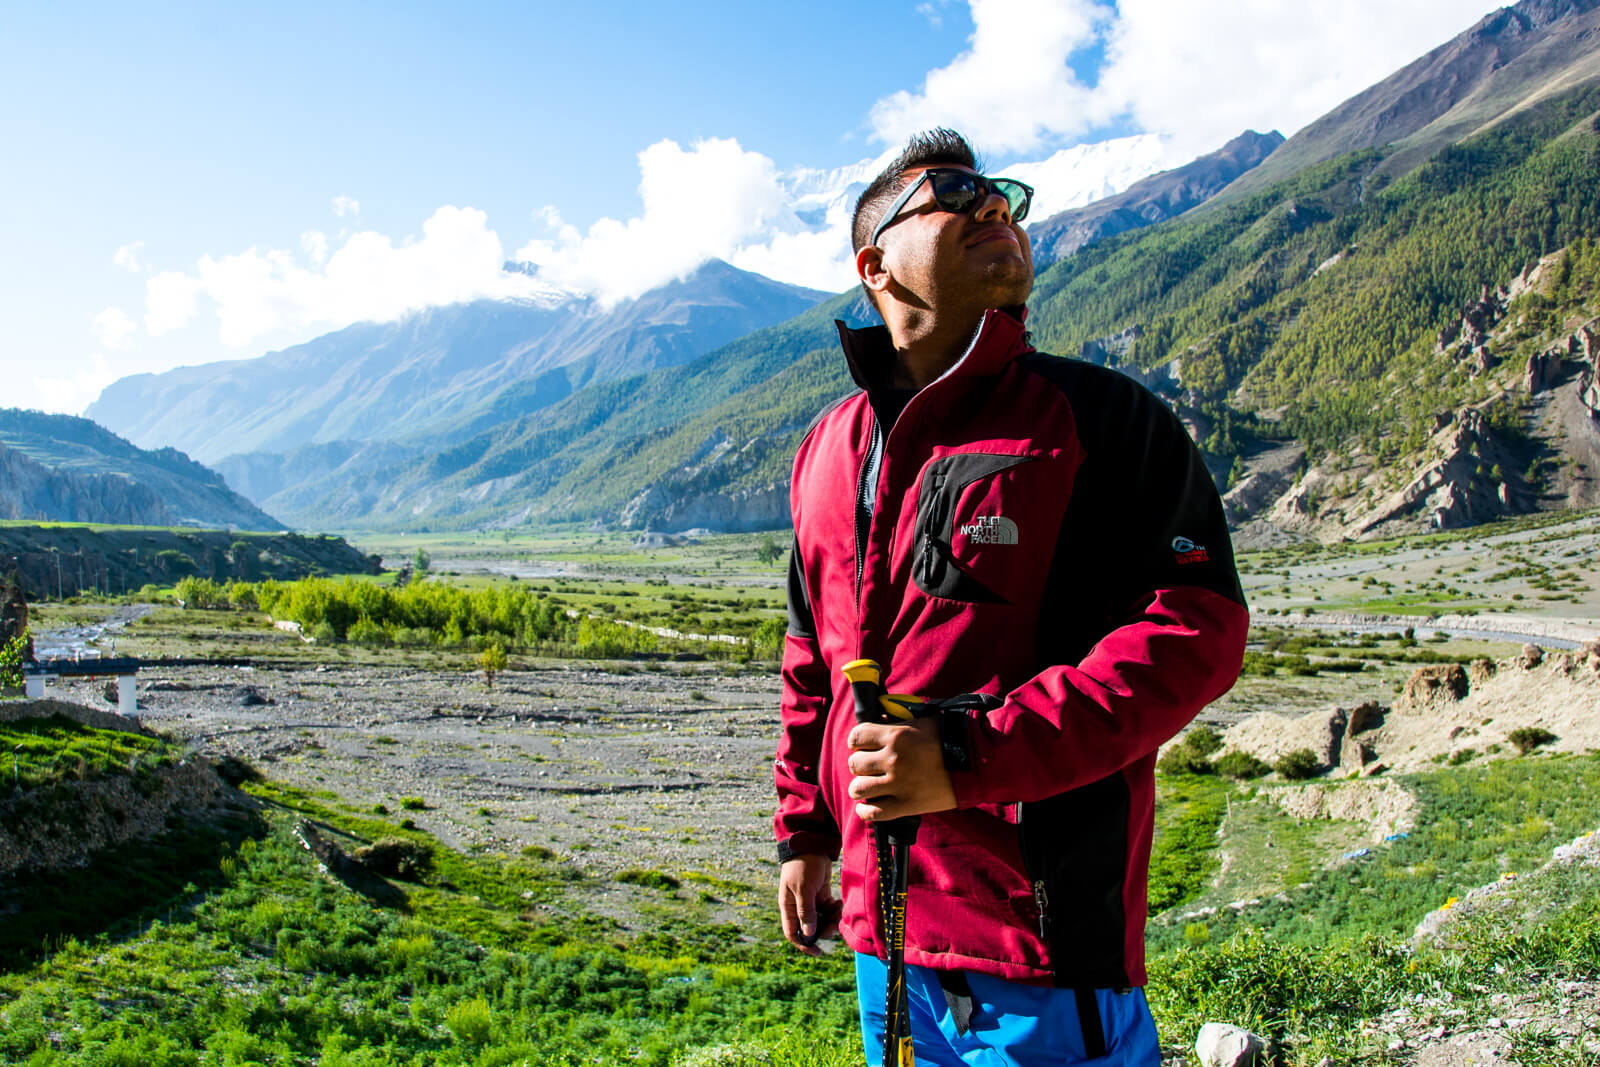 The Man of Wonders Ready to Conquer the Annapurna Circuit Trek of Nepal